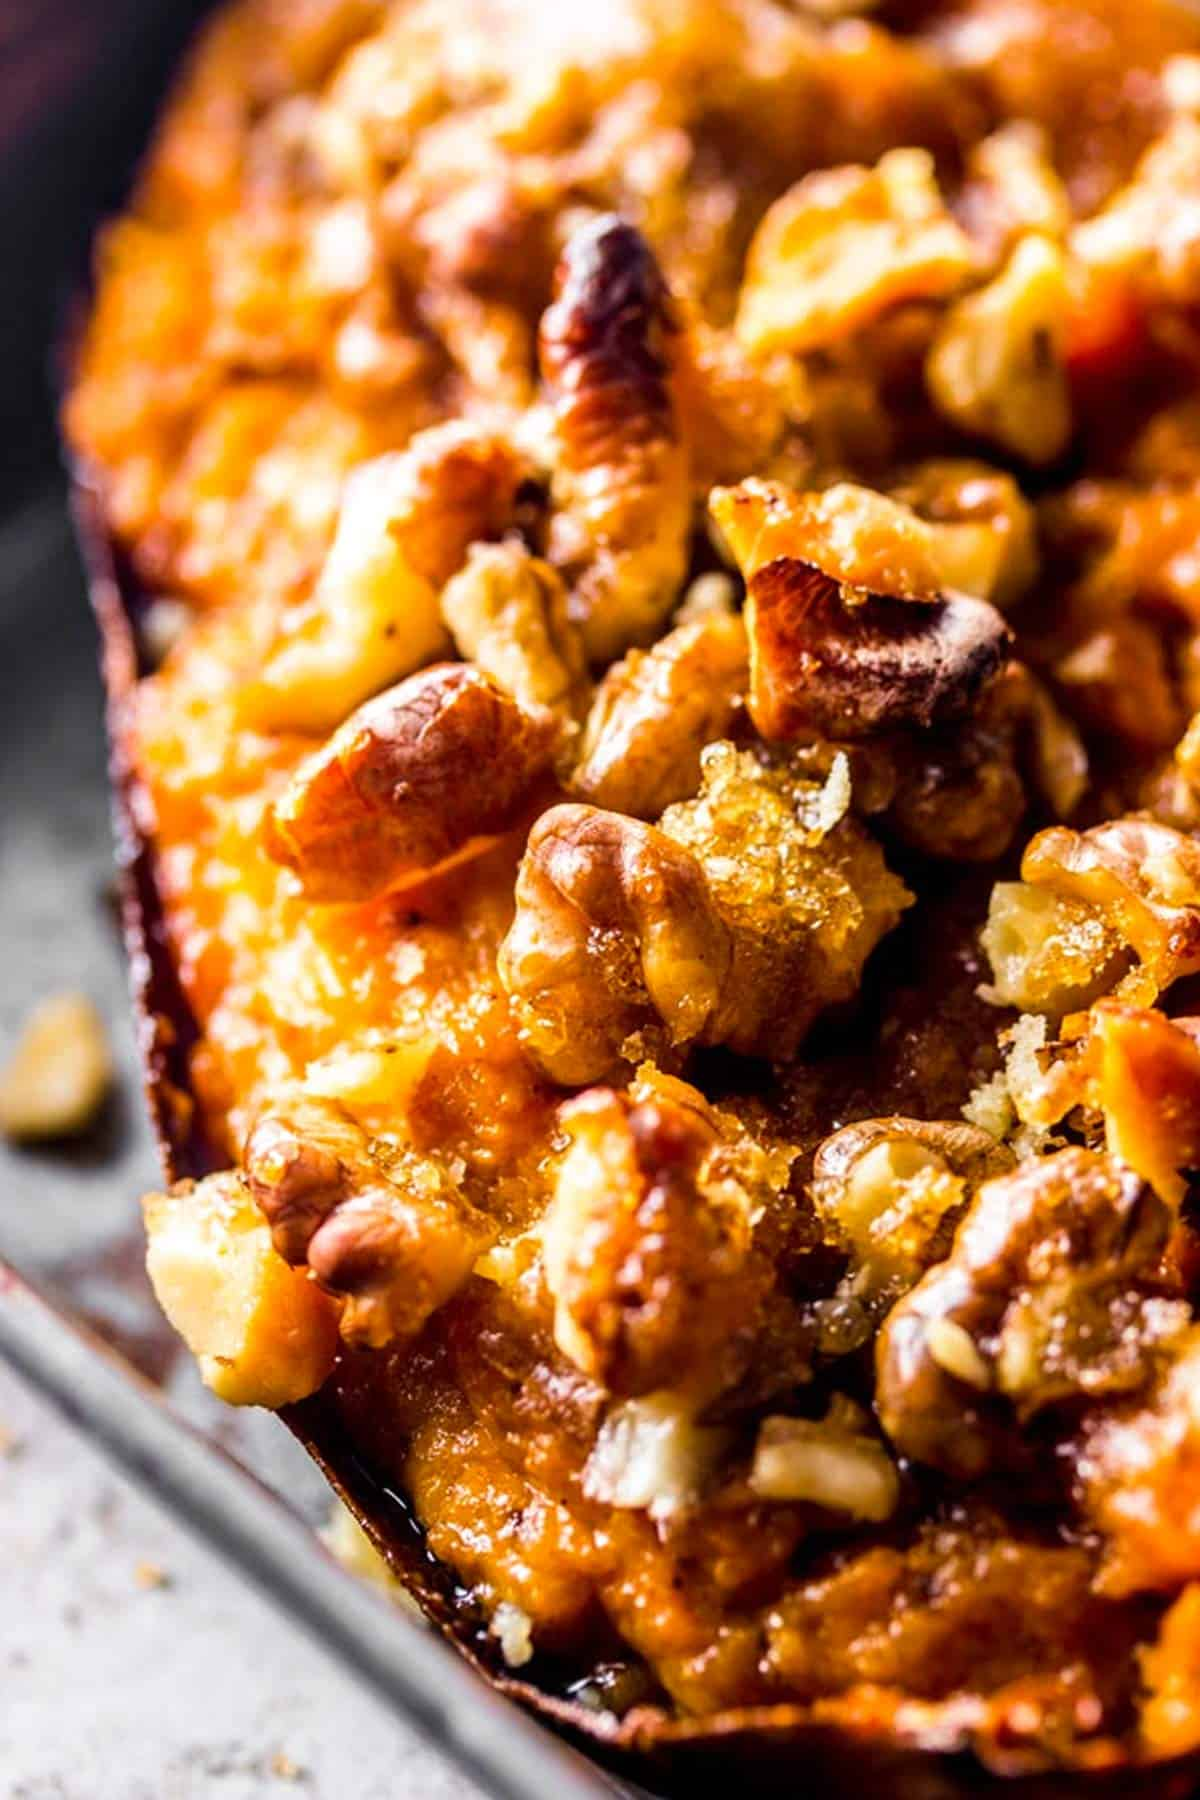 extreme close up of maple walnut topping on a twice baked sweet potato skin